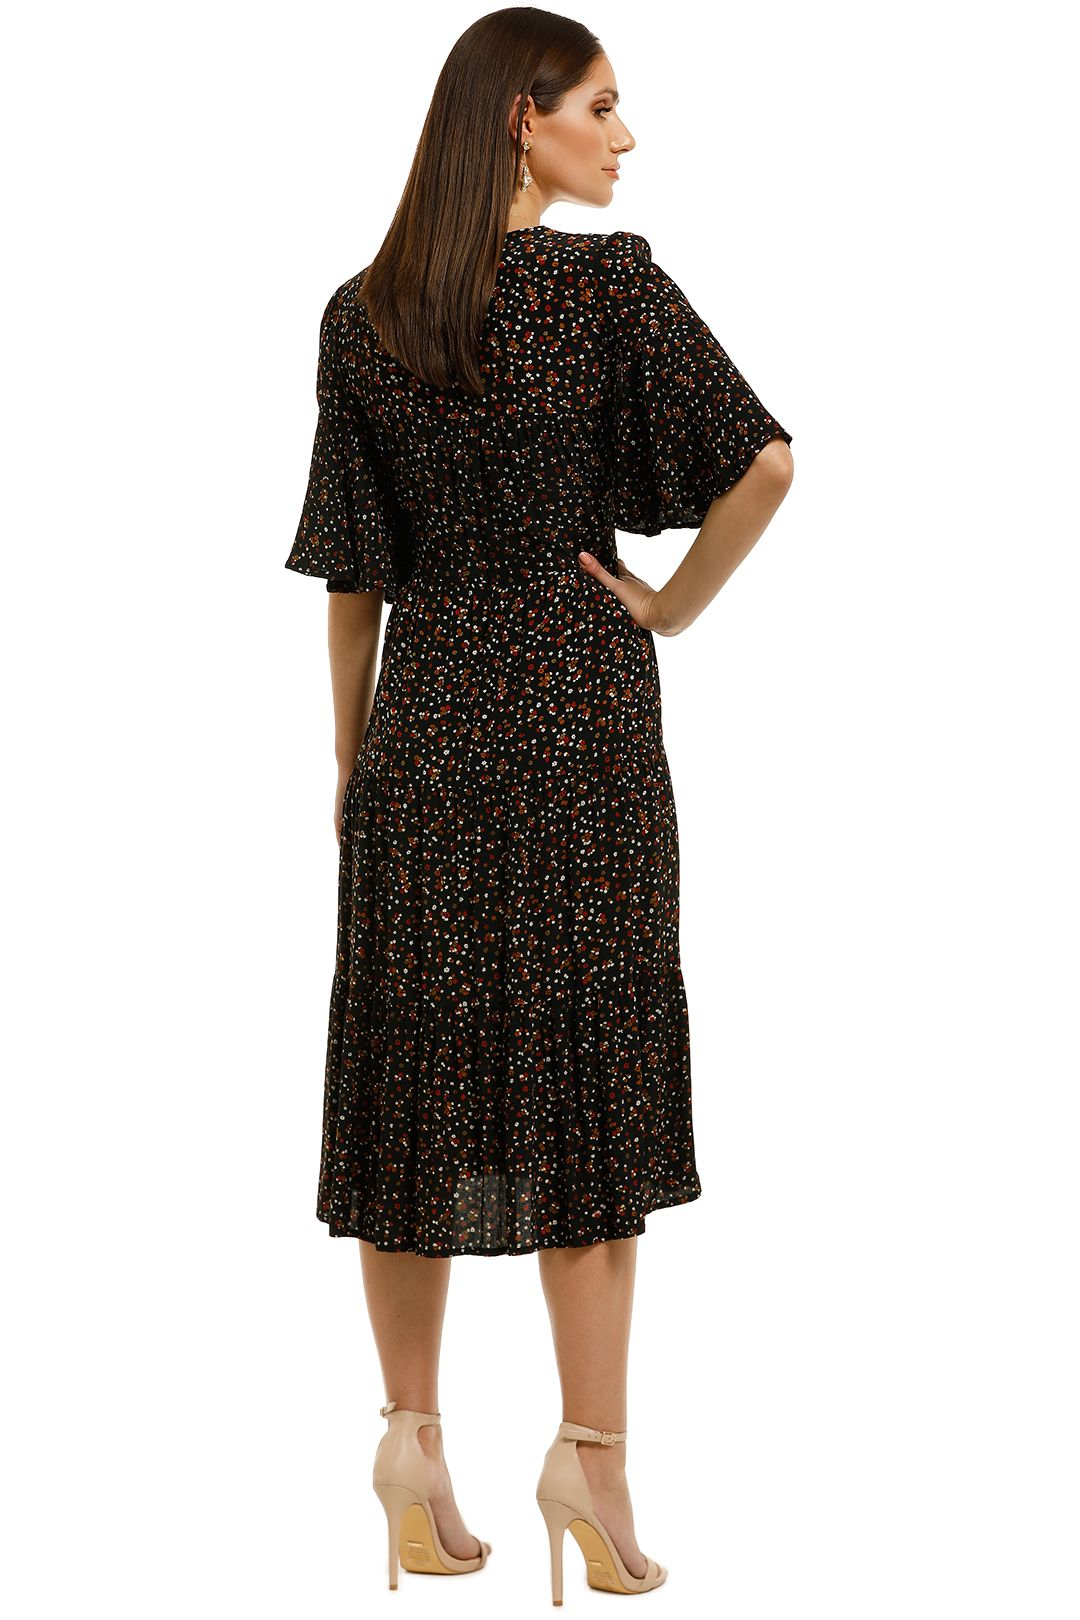 Faithfull - Melia Midi Dress - La Contrie Print - Back